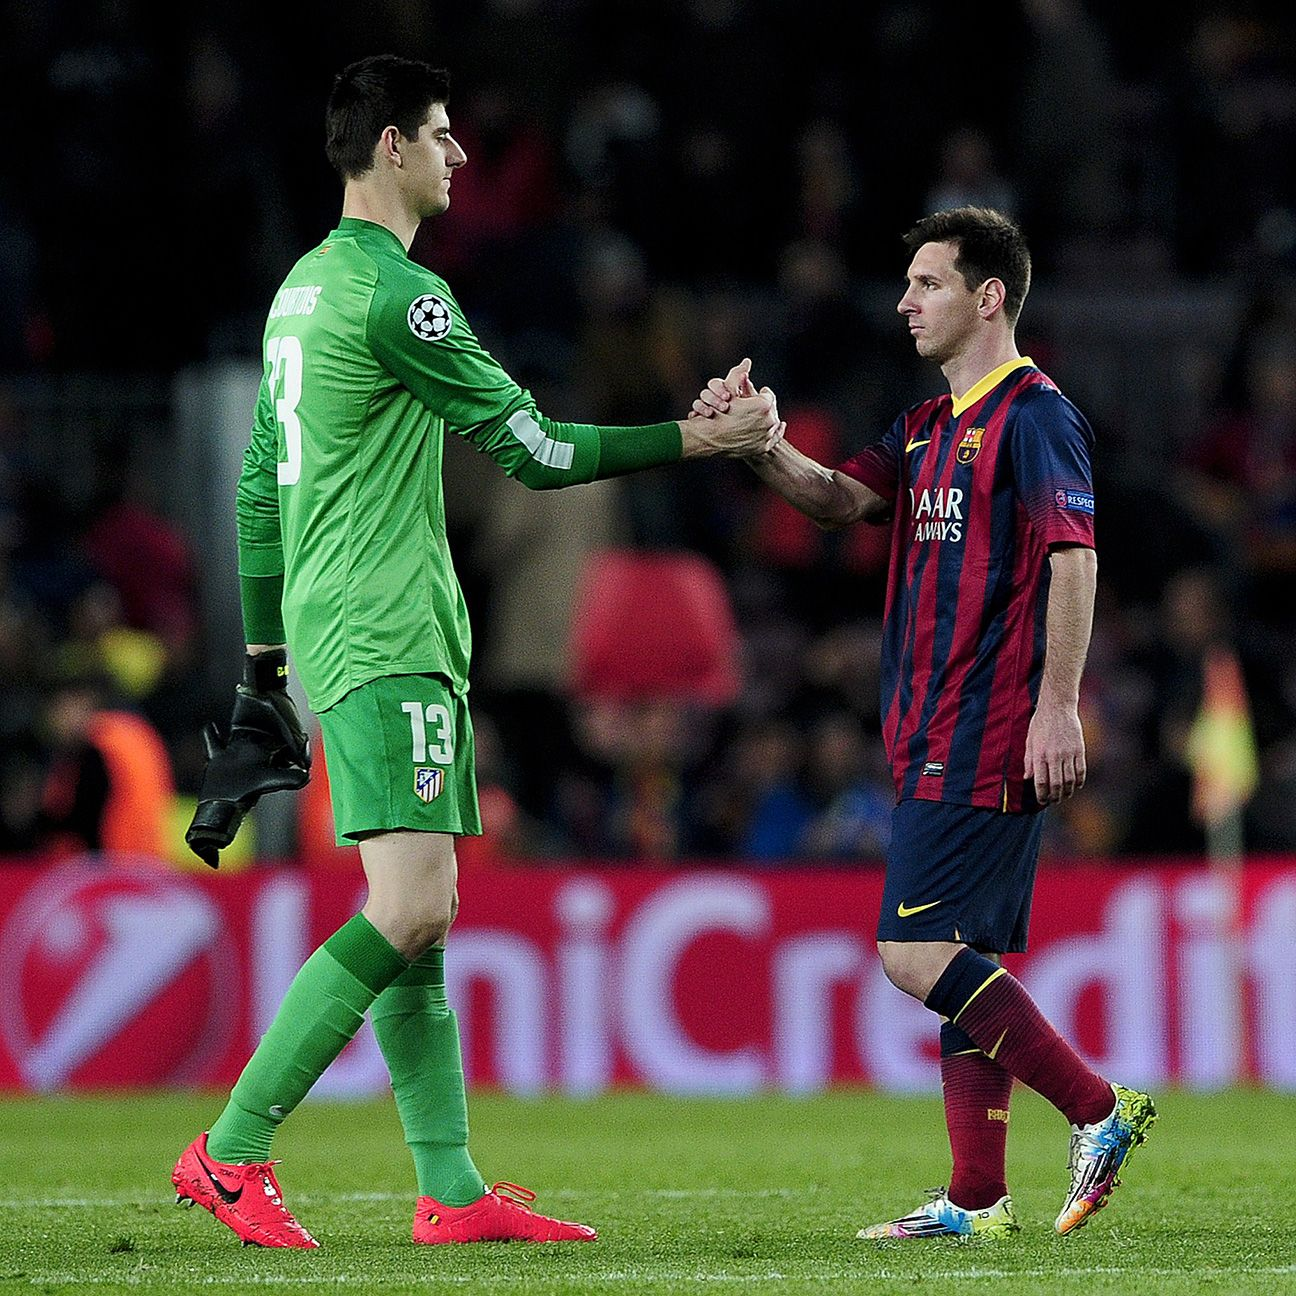 Messi has been largely unable to beat Courtois but how much of that is down to the goalkeeper?